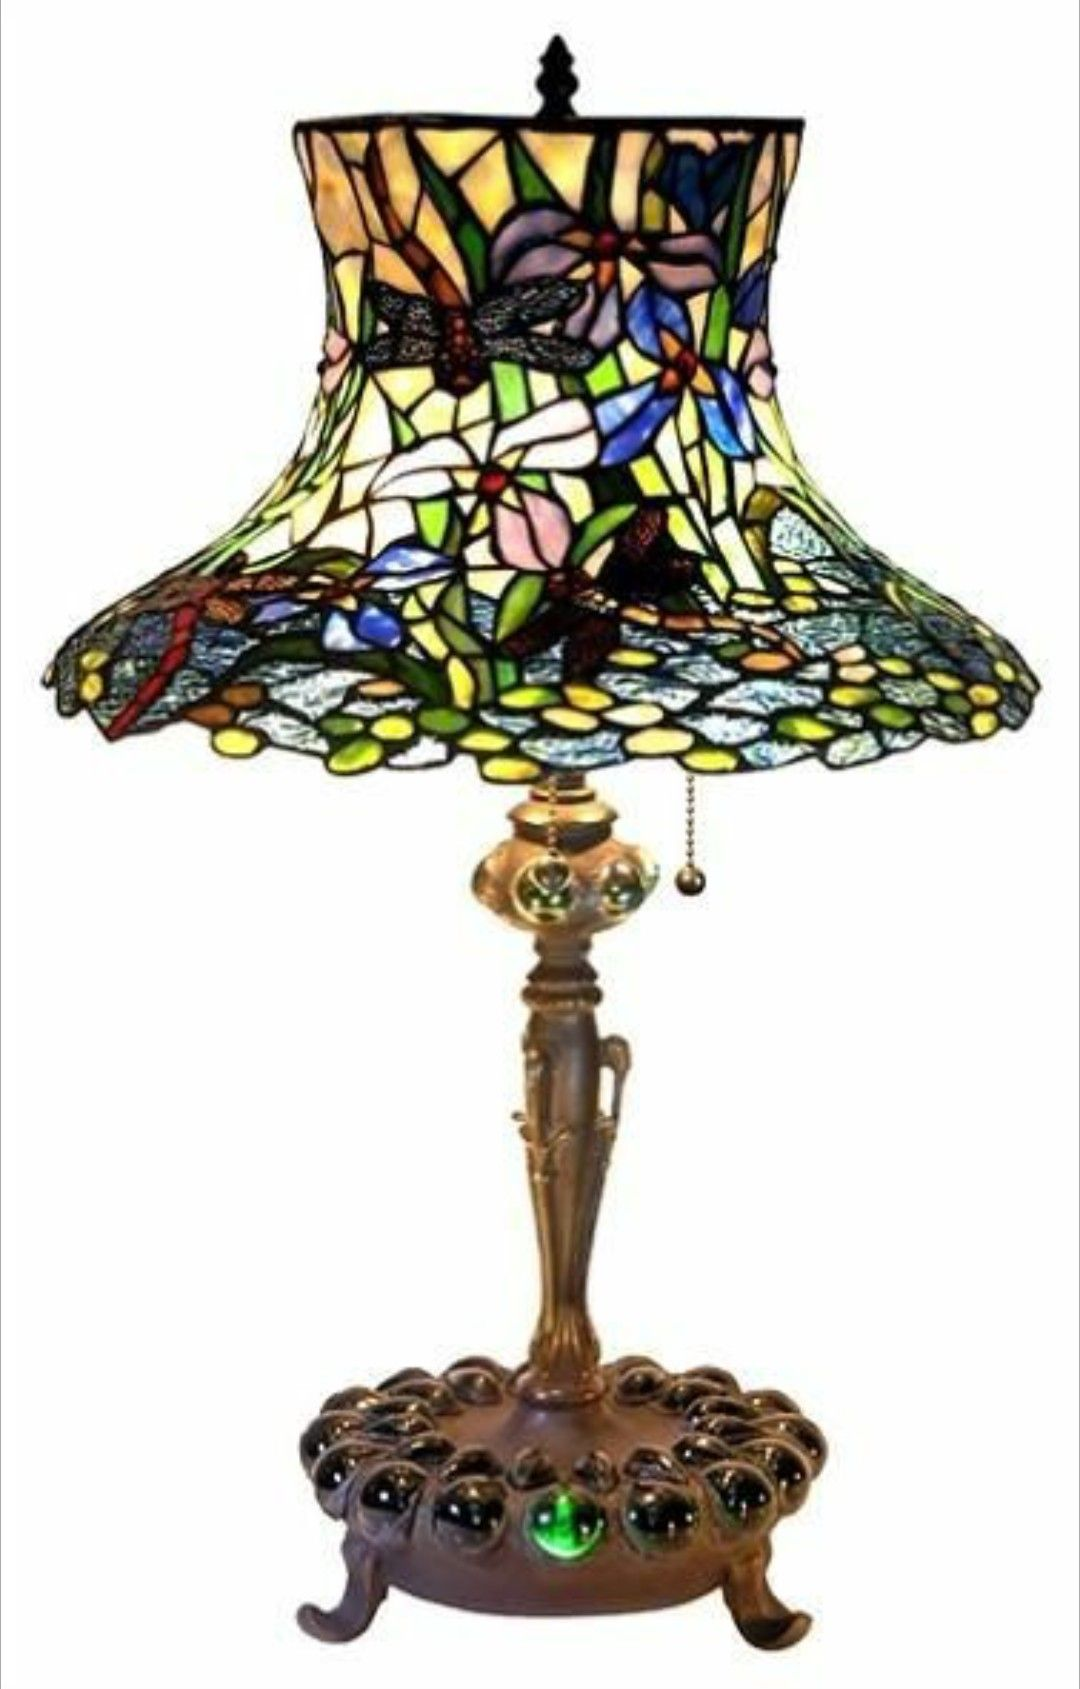 Pin By Wandyram On Tiffany Amp Glass Lamps In 2019 Tiffany